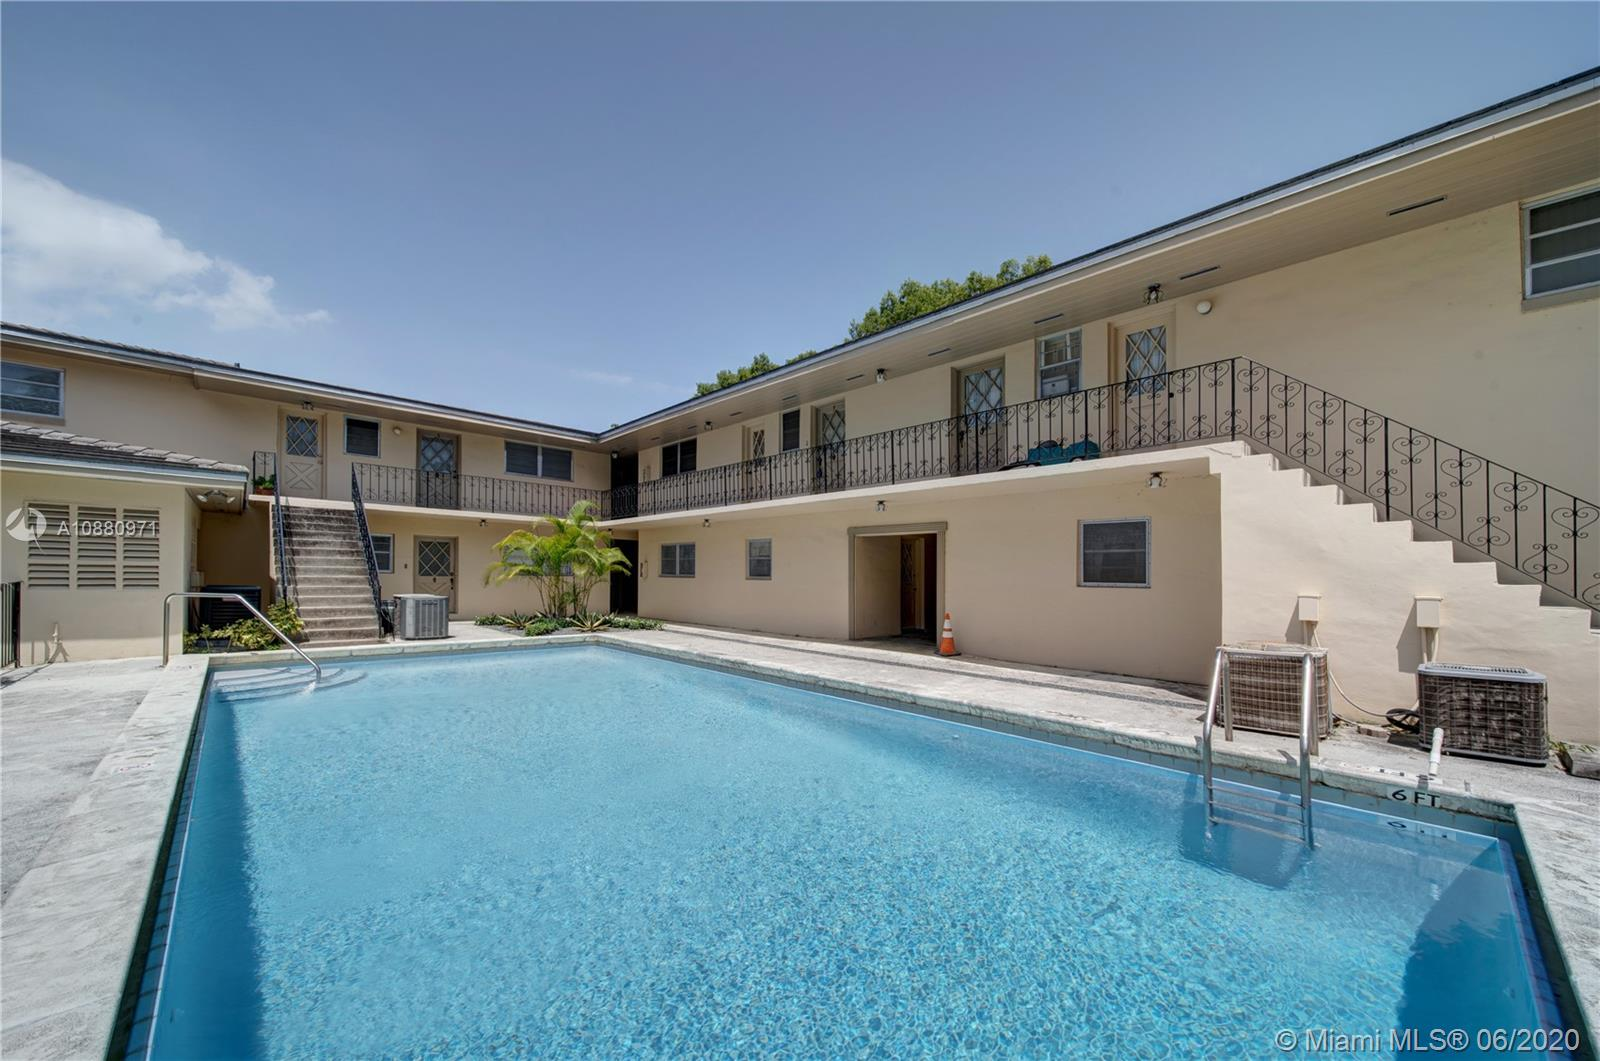 1239  Mariposa Ave #2 For Sale A10880971, FL